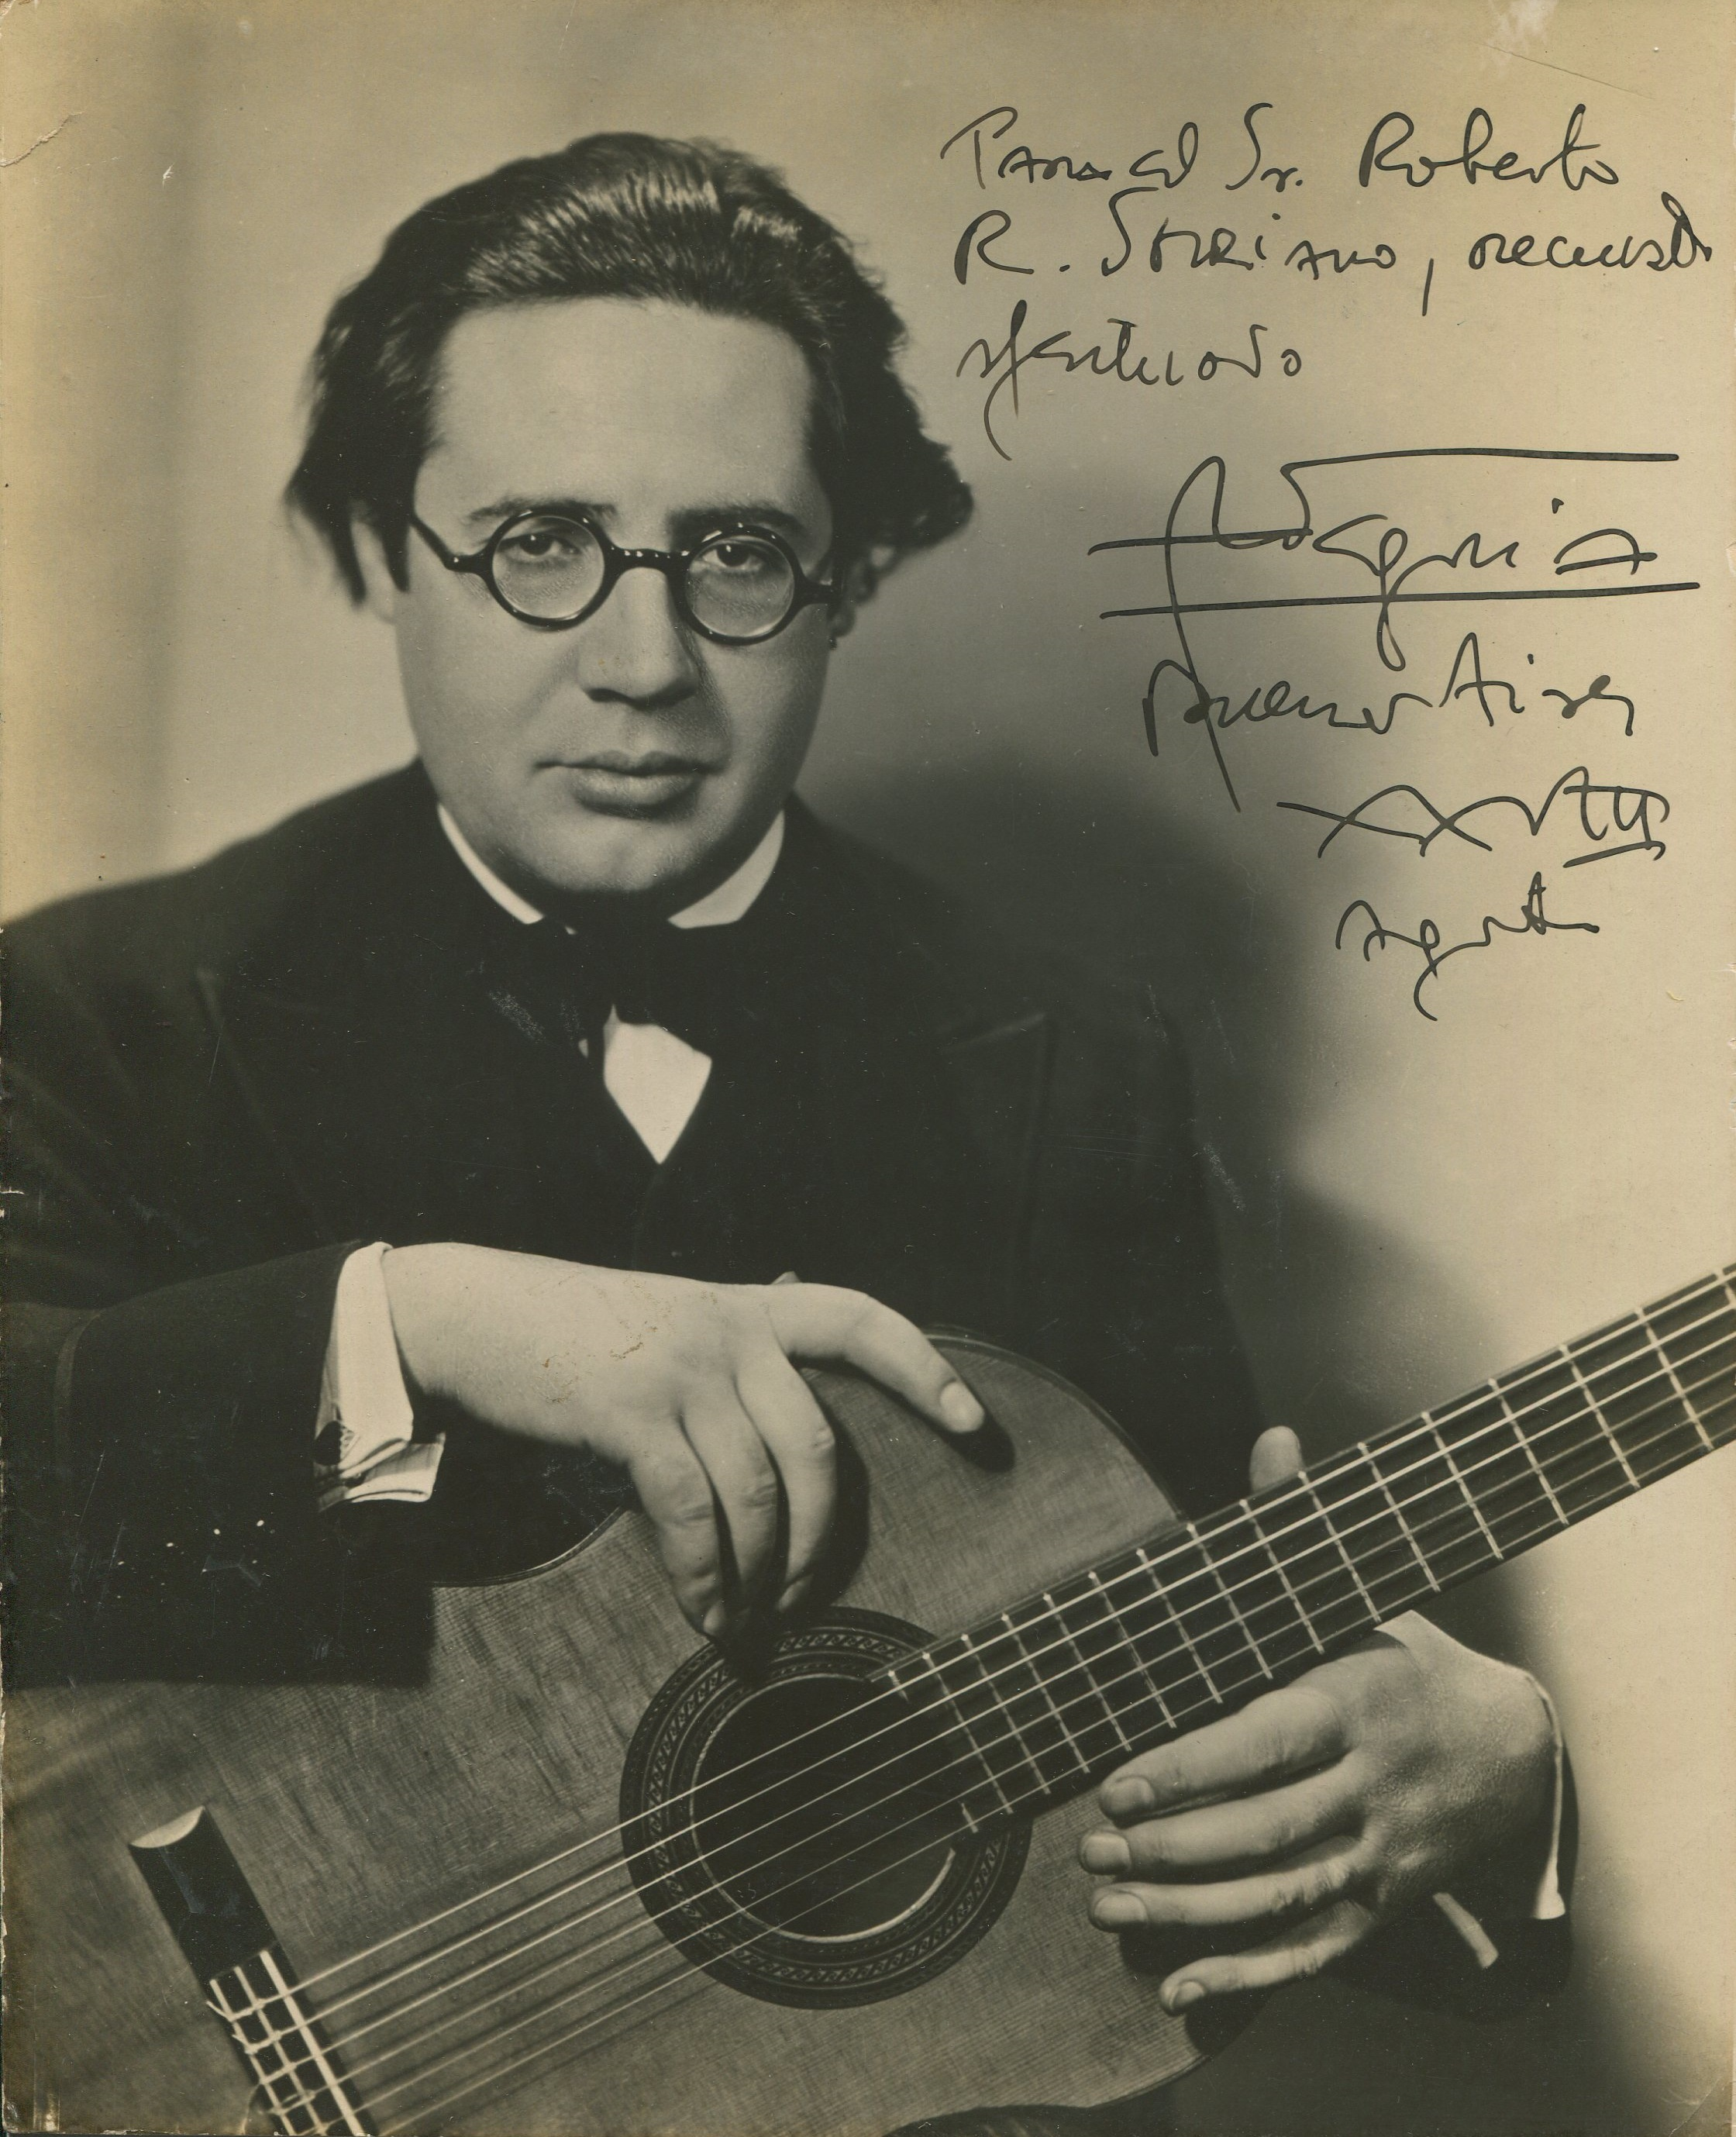 Caption: Andres Segovia, Credit: Wikipedia